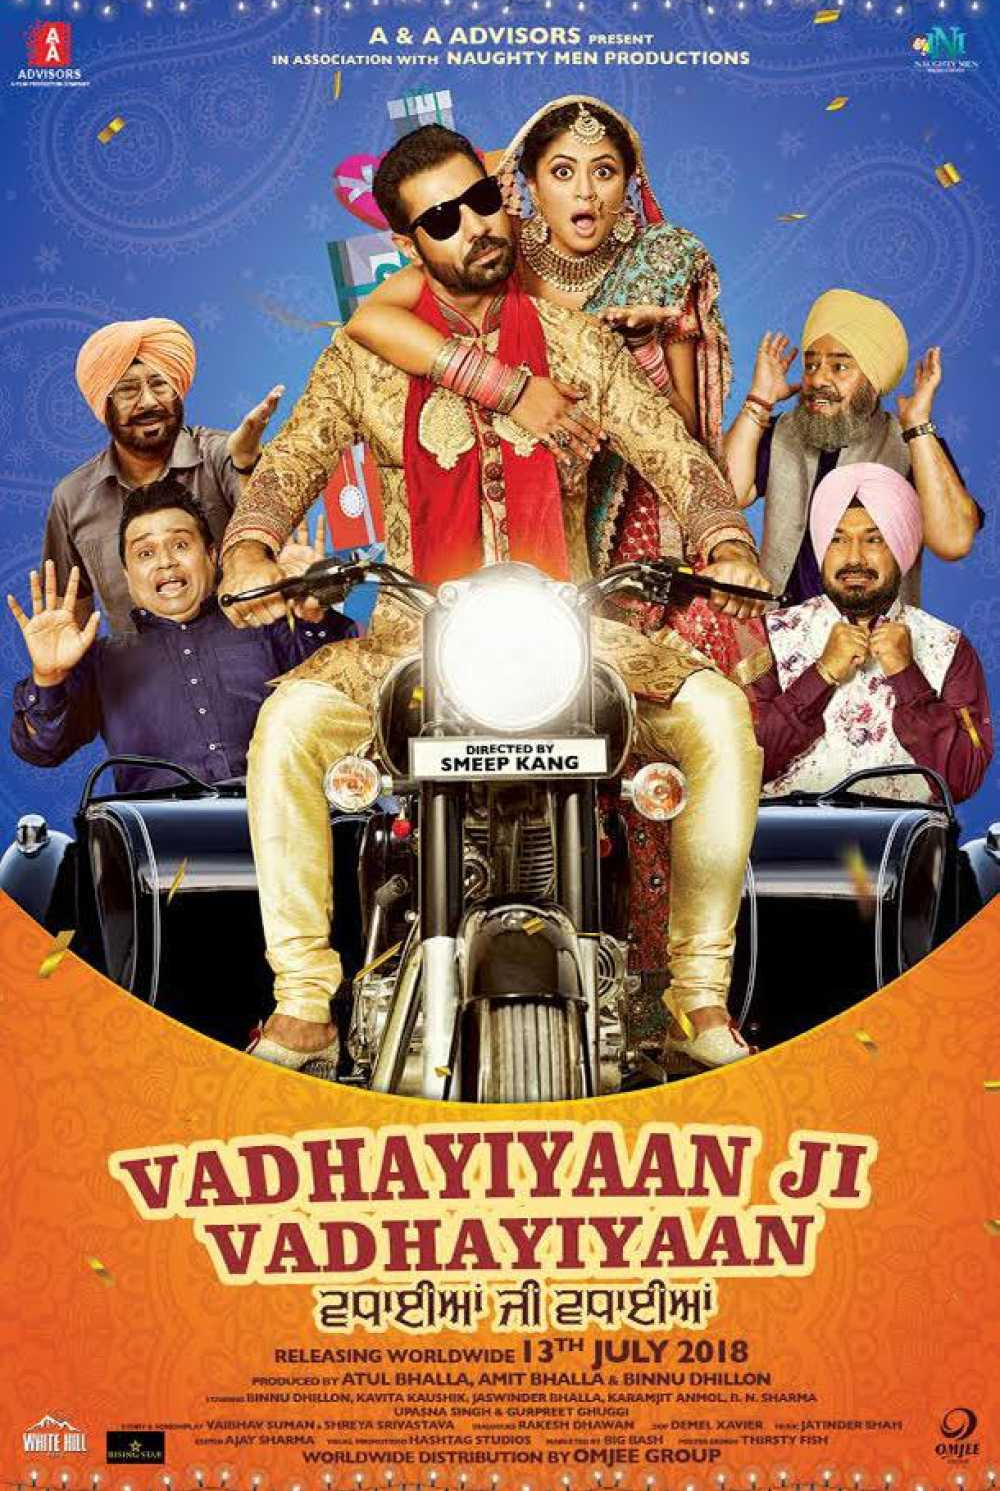 Vadhayiyaan Ji Vadhayiyaan Download Full Movie